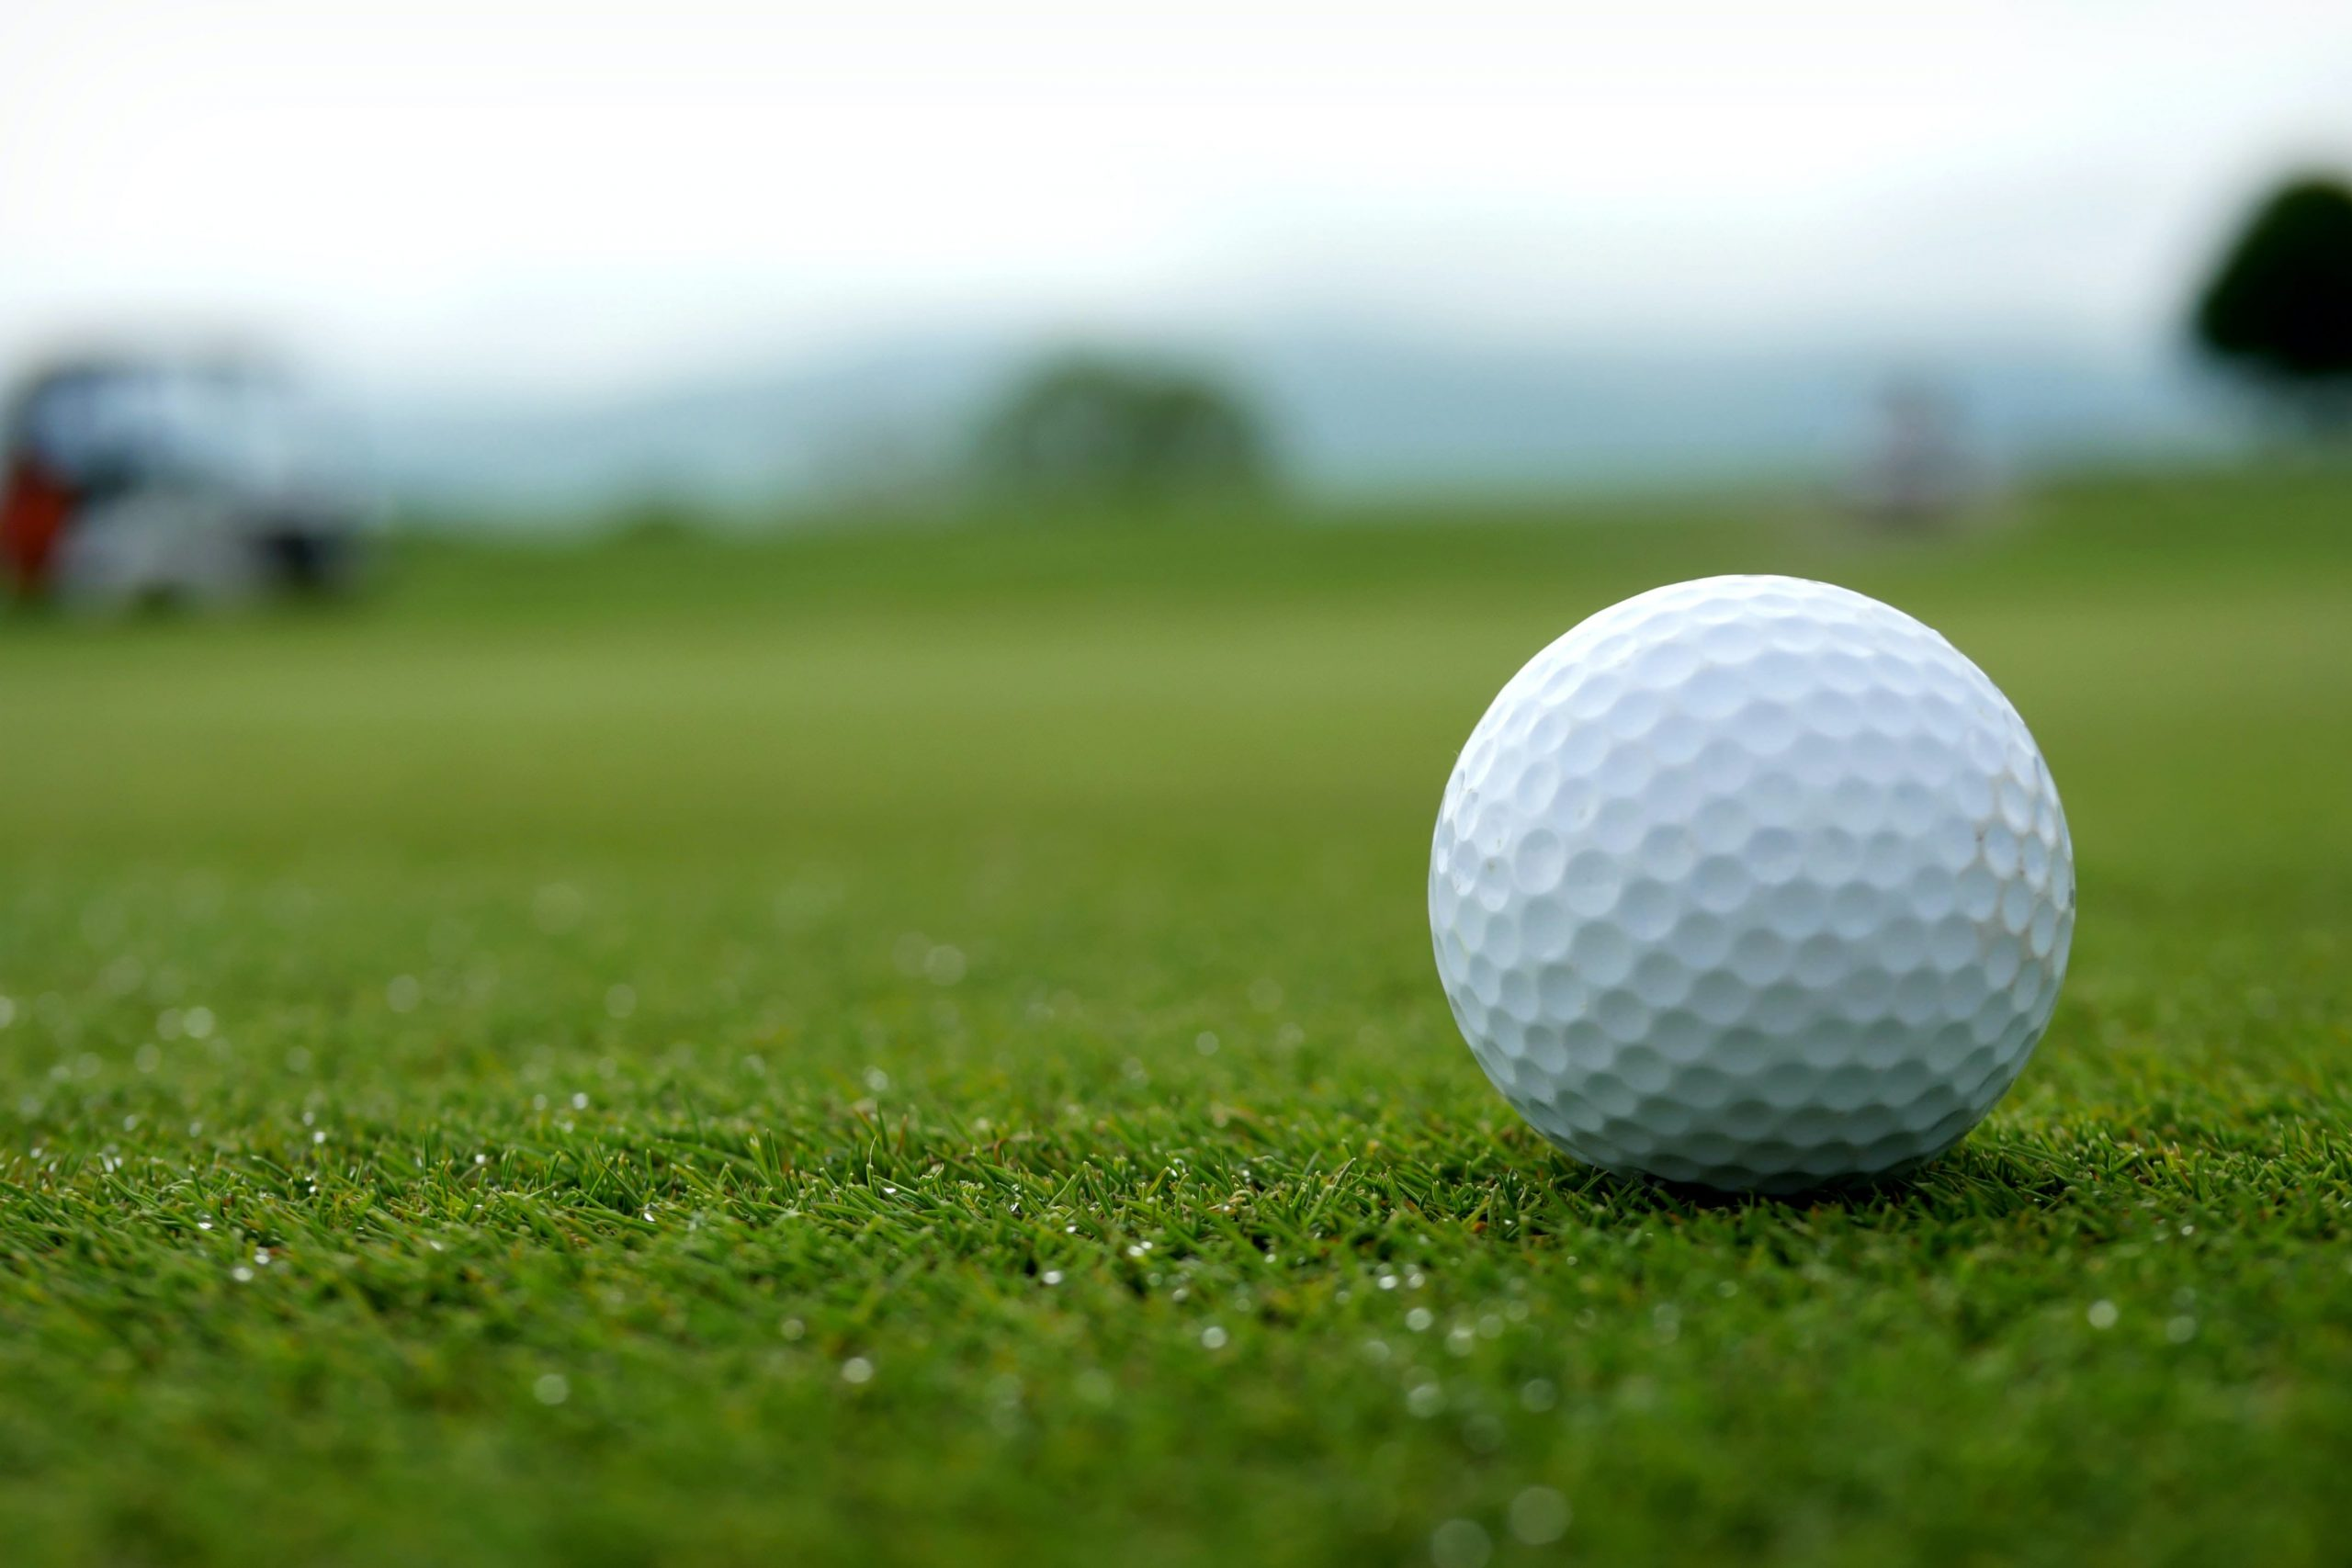 A golf ball sits on green grass